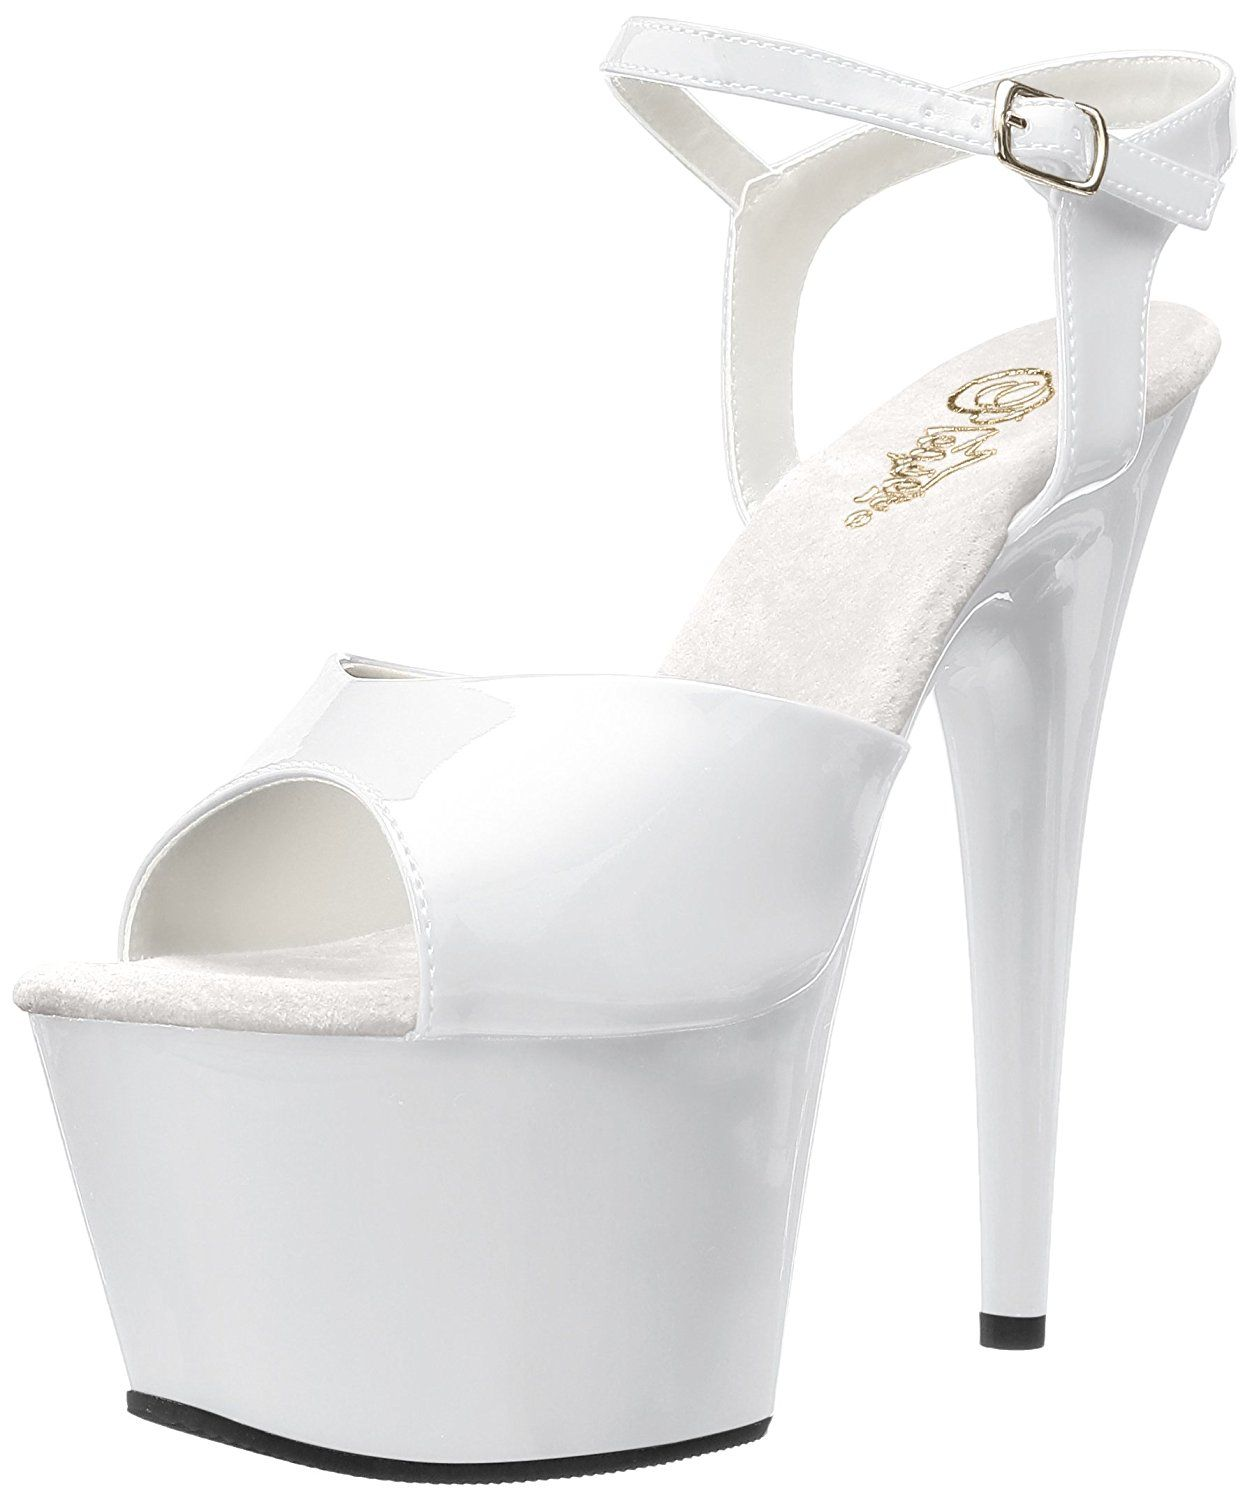 Pleaser Women's Adore-709/W/M Platform Sandal * Learn more by visiting the image link.